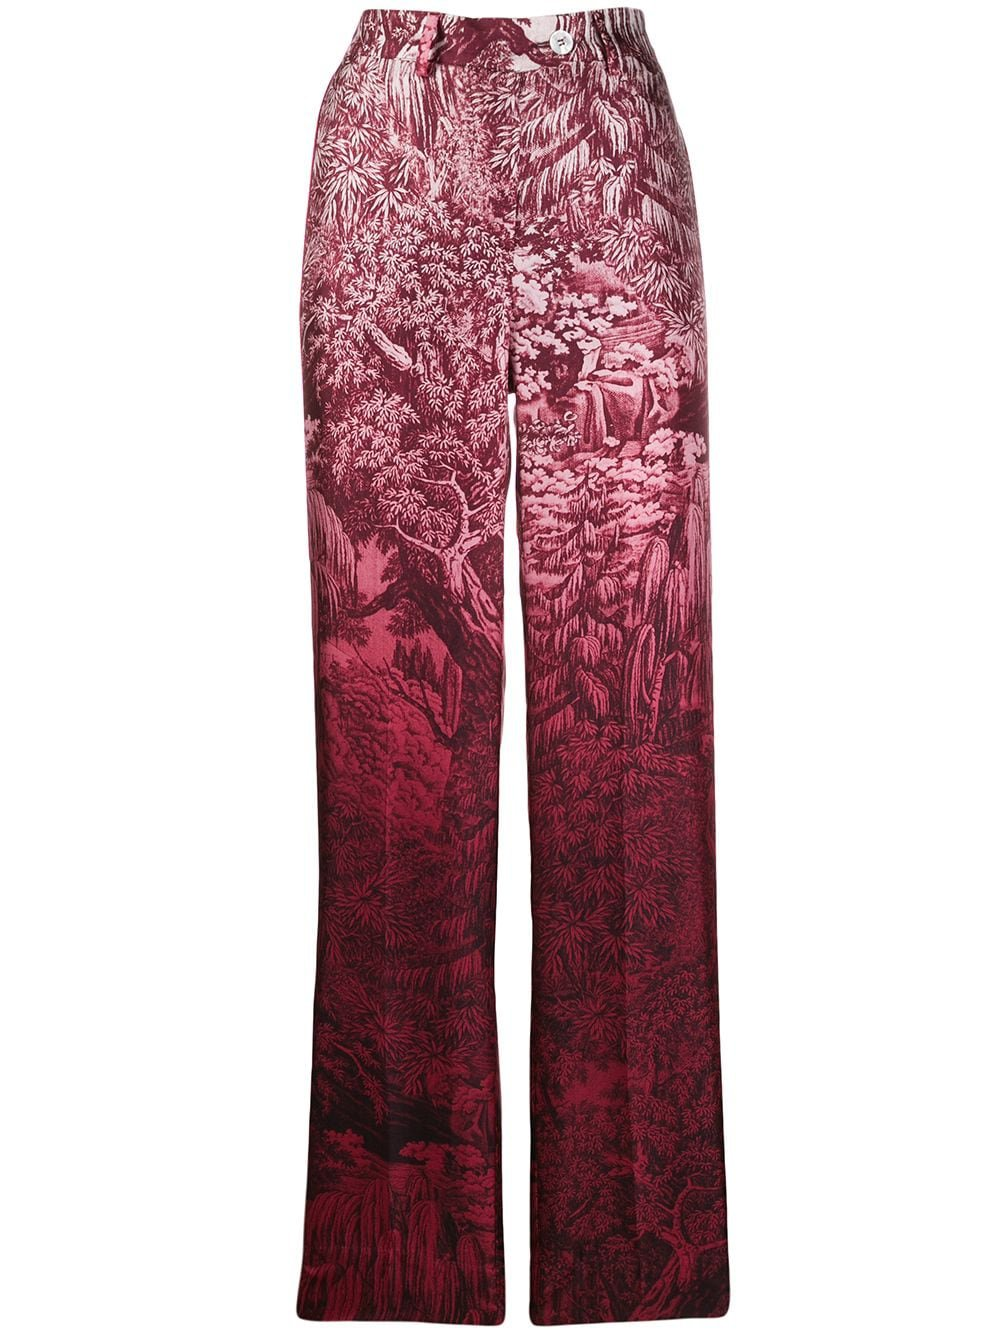 F.r.s For Restless Sleepers Patterned Straight-Leg Trousers